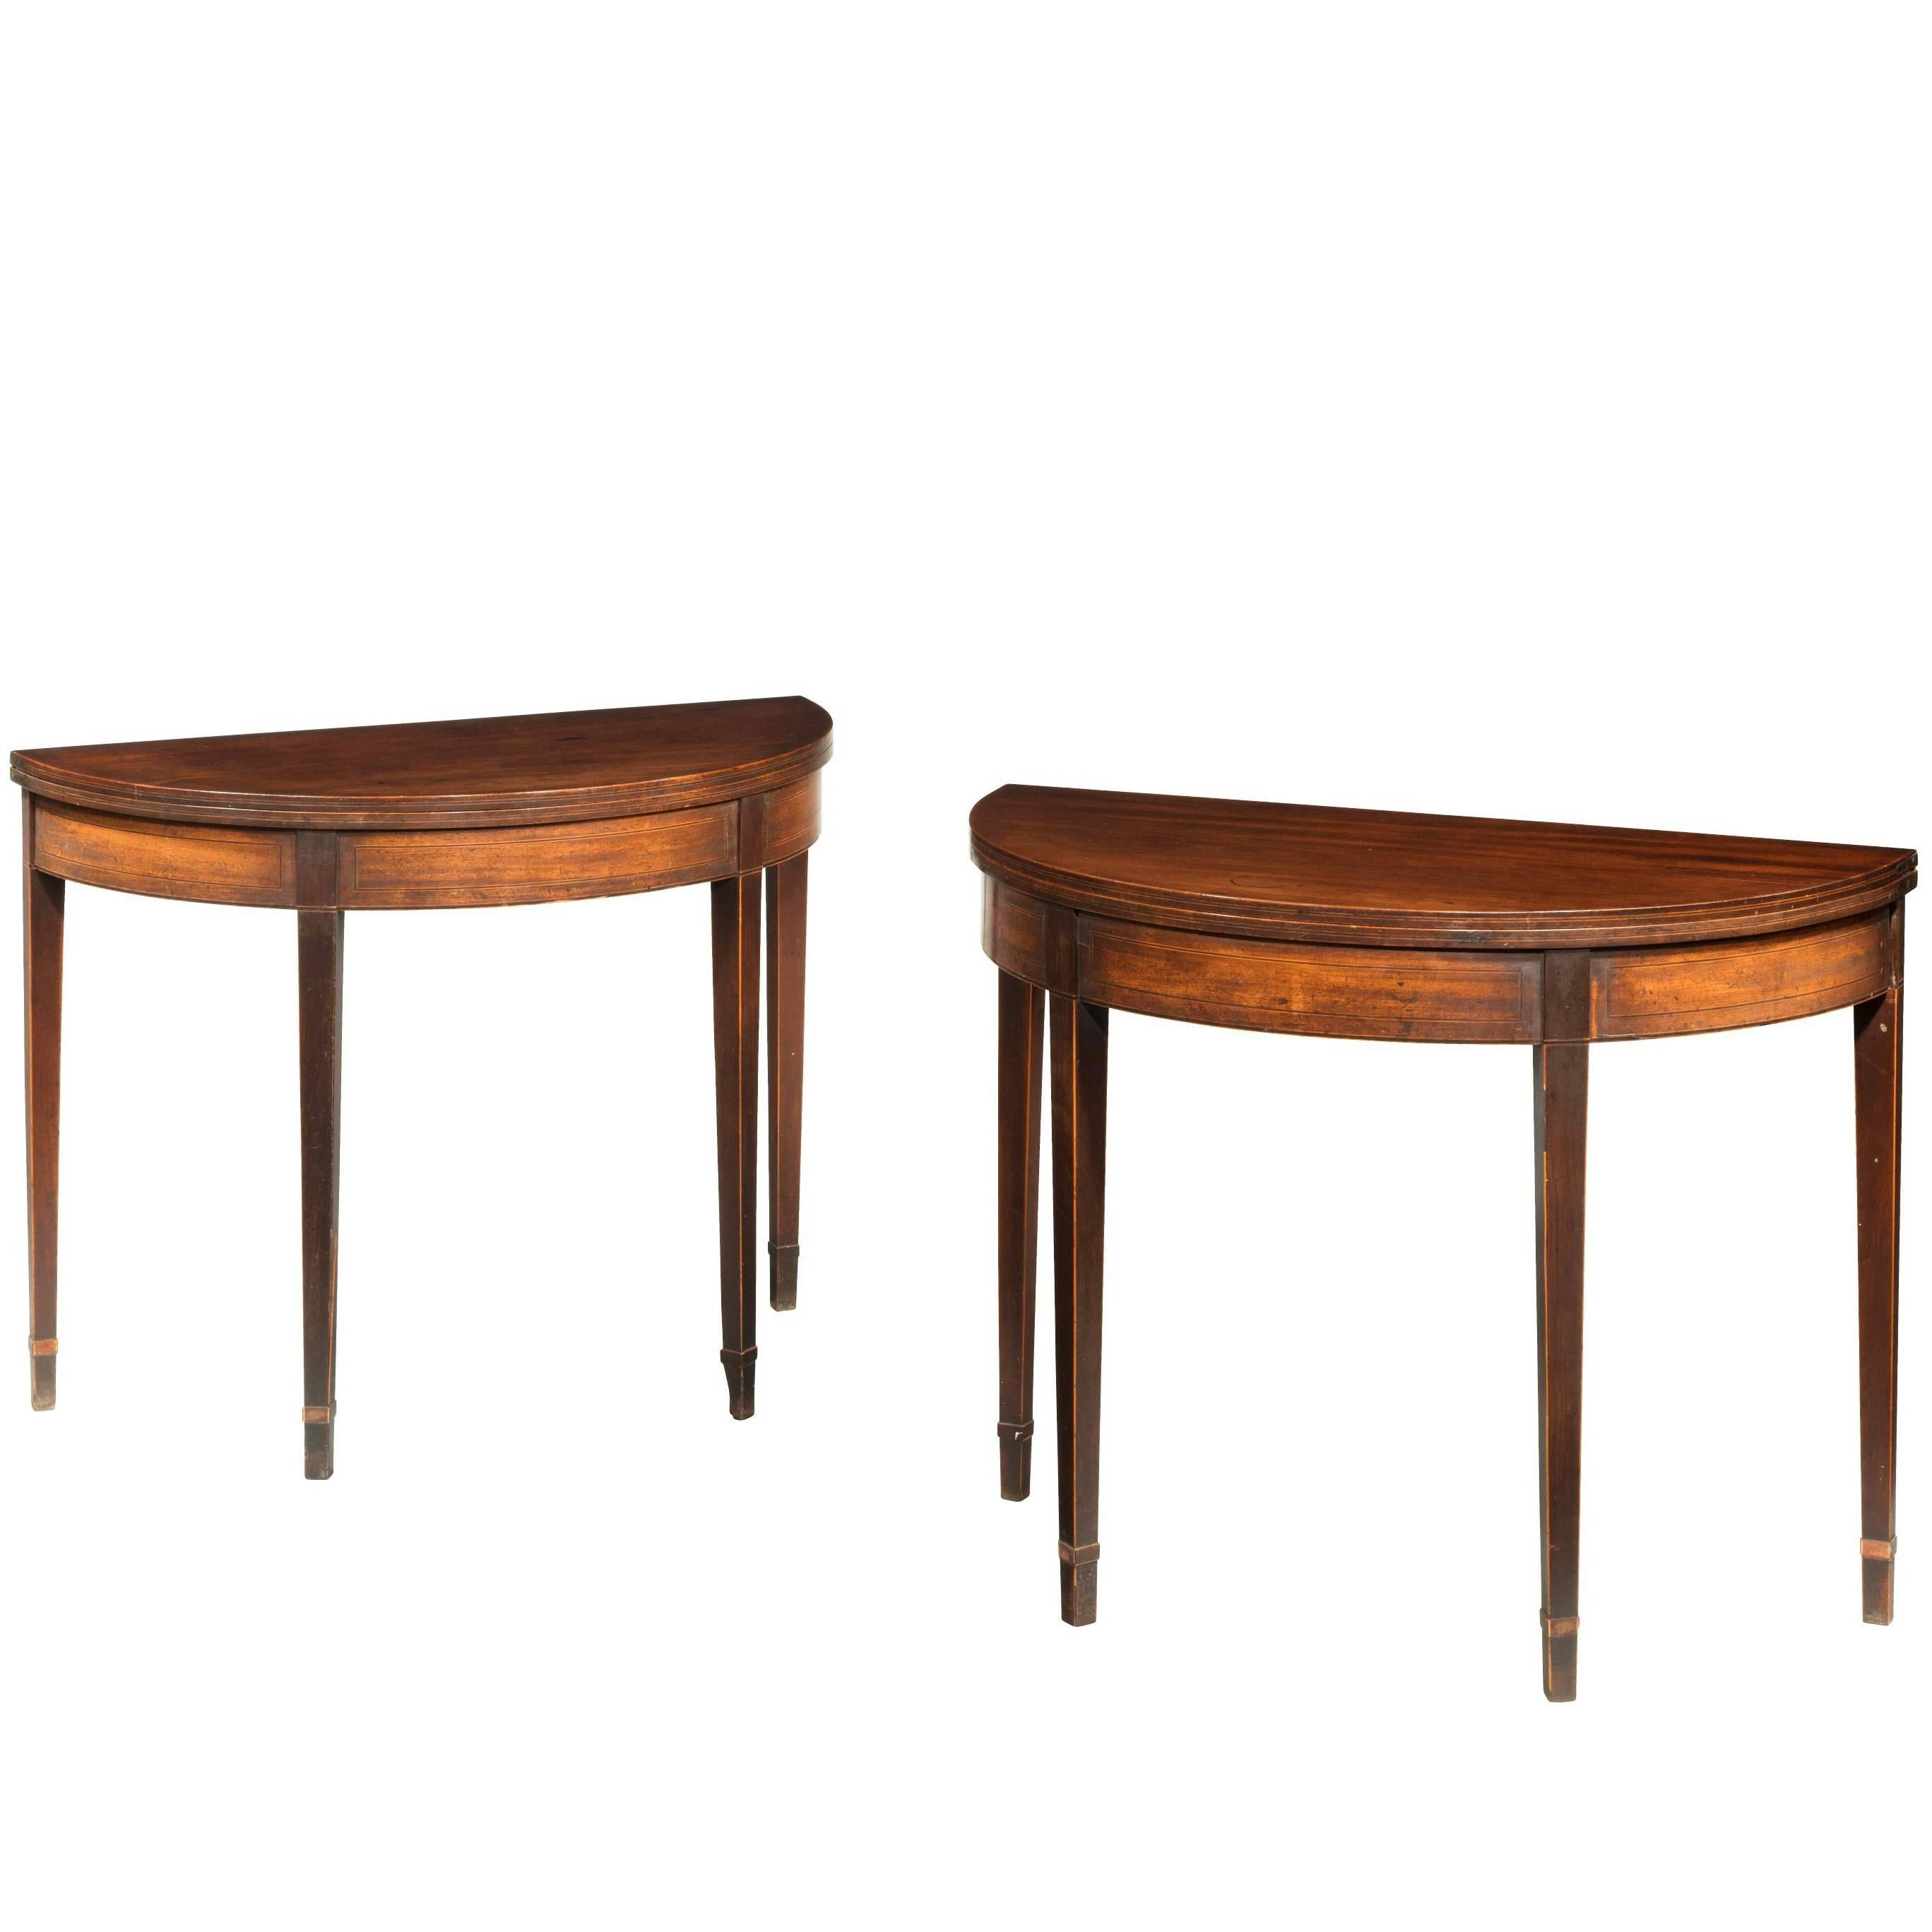 Pair Of George III Period Mahogany Demilune Card Tables With Fine Line Inlay